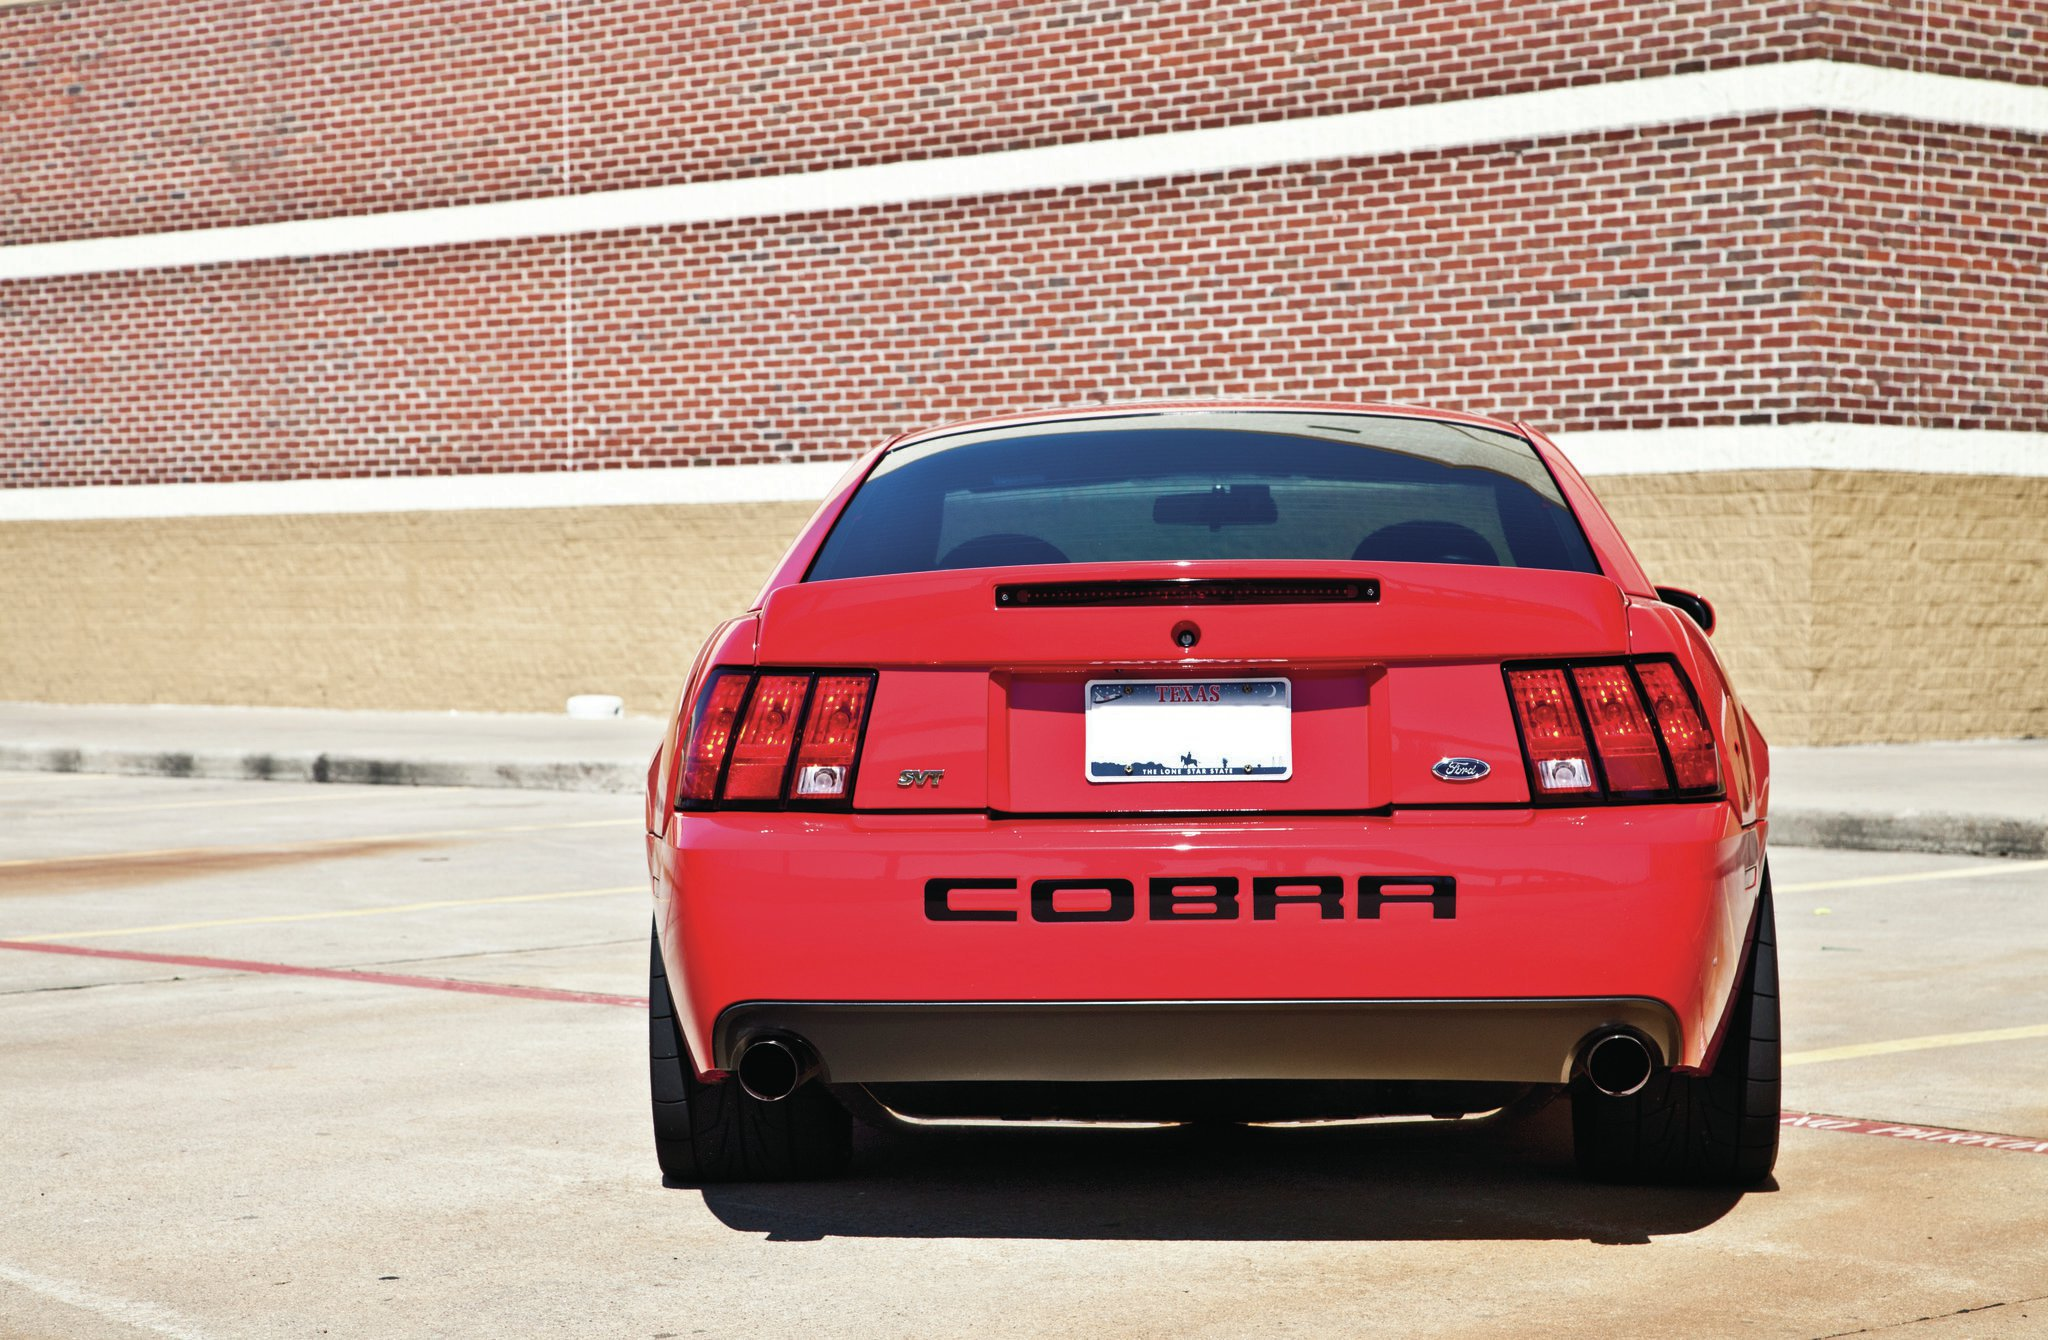 2004 Ford Mustang Rear View